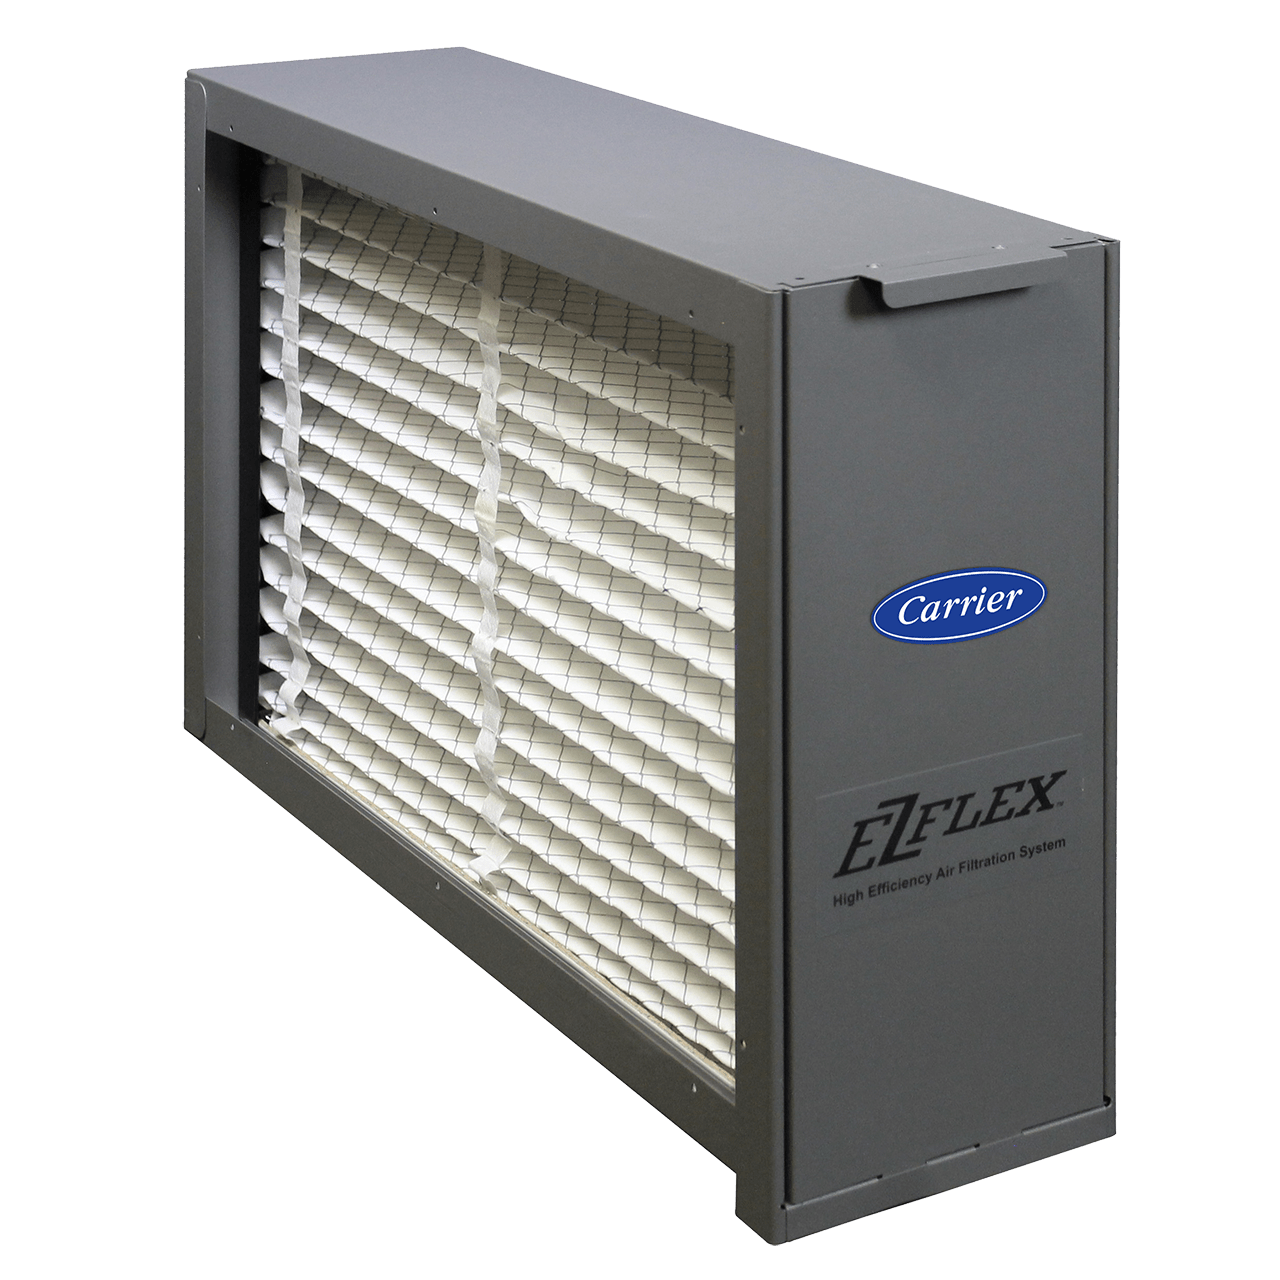 carrier infinity air purifier price